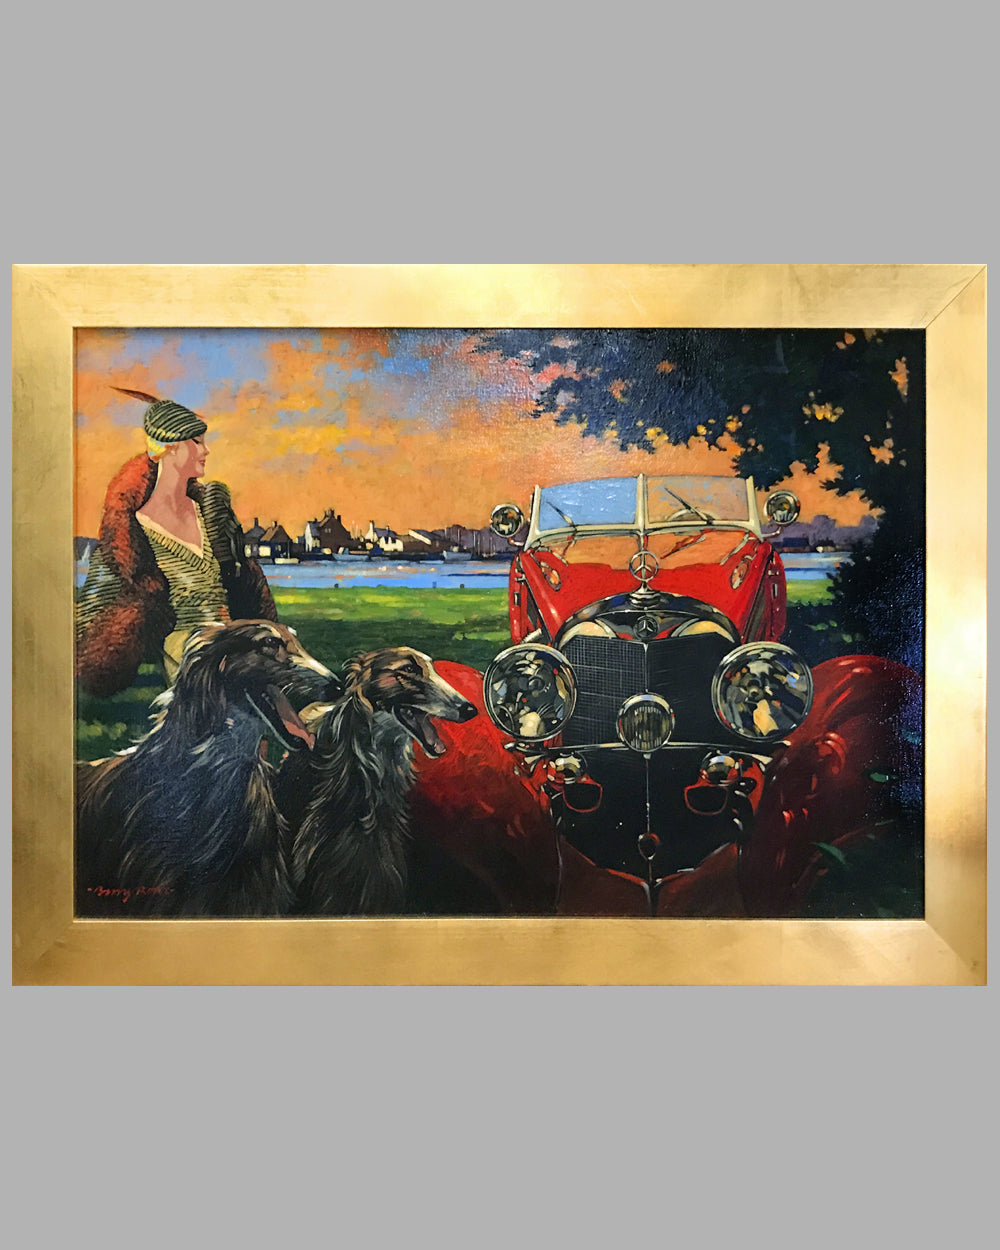 Mercedes-Benz 500K Acrylic on Canvas Painting by Barry Rowe